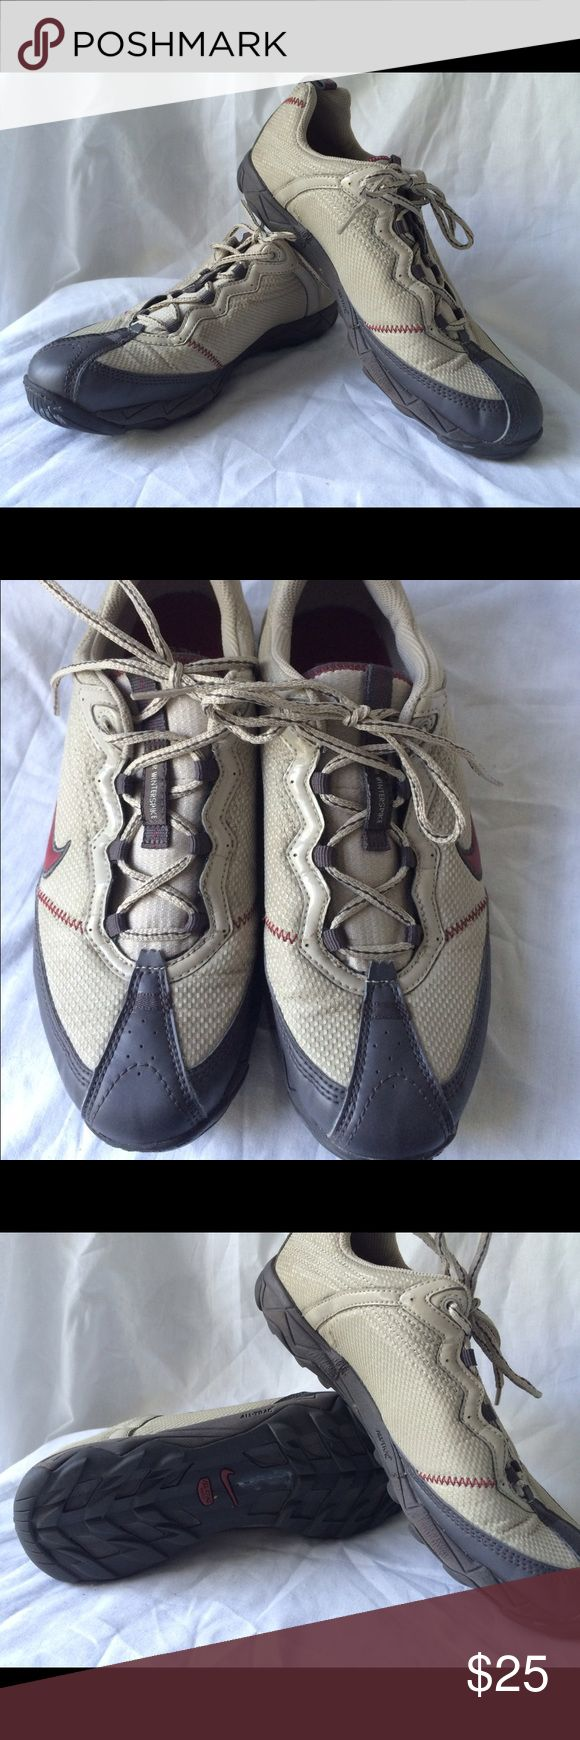 Nike a Air Winterspike All Trac NIKE AIR WINTERSPIKE IN EXCELLENT CONDITION MEN'S SIZE 9 ALL TRAC, WALKING AND SPORTS TRAINING TAN WITH A BURGUNDY/BRICK COLOR ACCENT EXCELLENT CONDITION, PLEASE SEE PICS....INSIDE LEFT SHOE HAS TINY SLIT. ONLY WORN A COUPLE OF TIMES Nike Shoes Sneakers